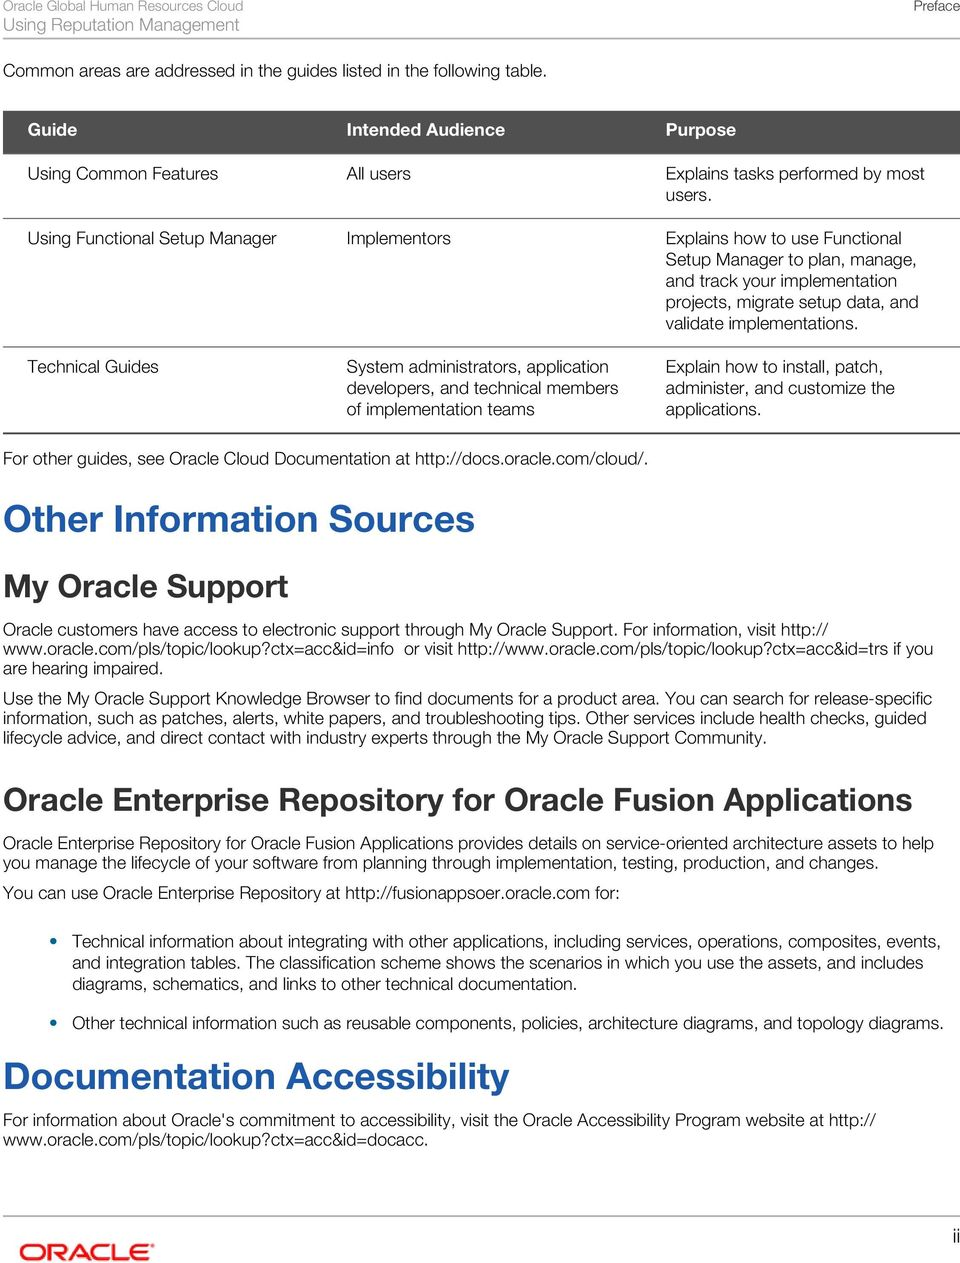 Oracle Global Human Resources Cloud Using Reputation